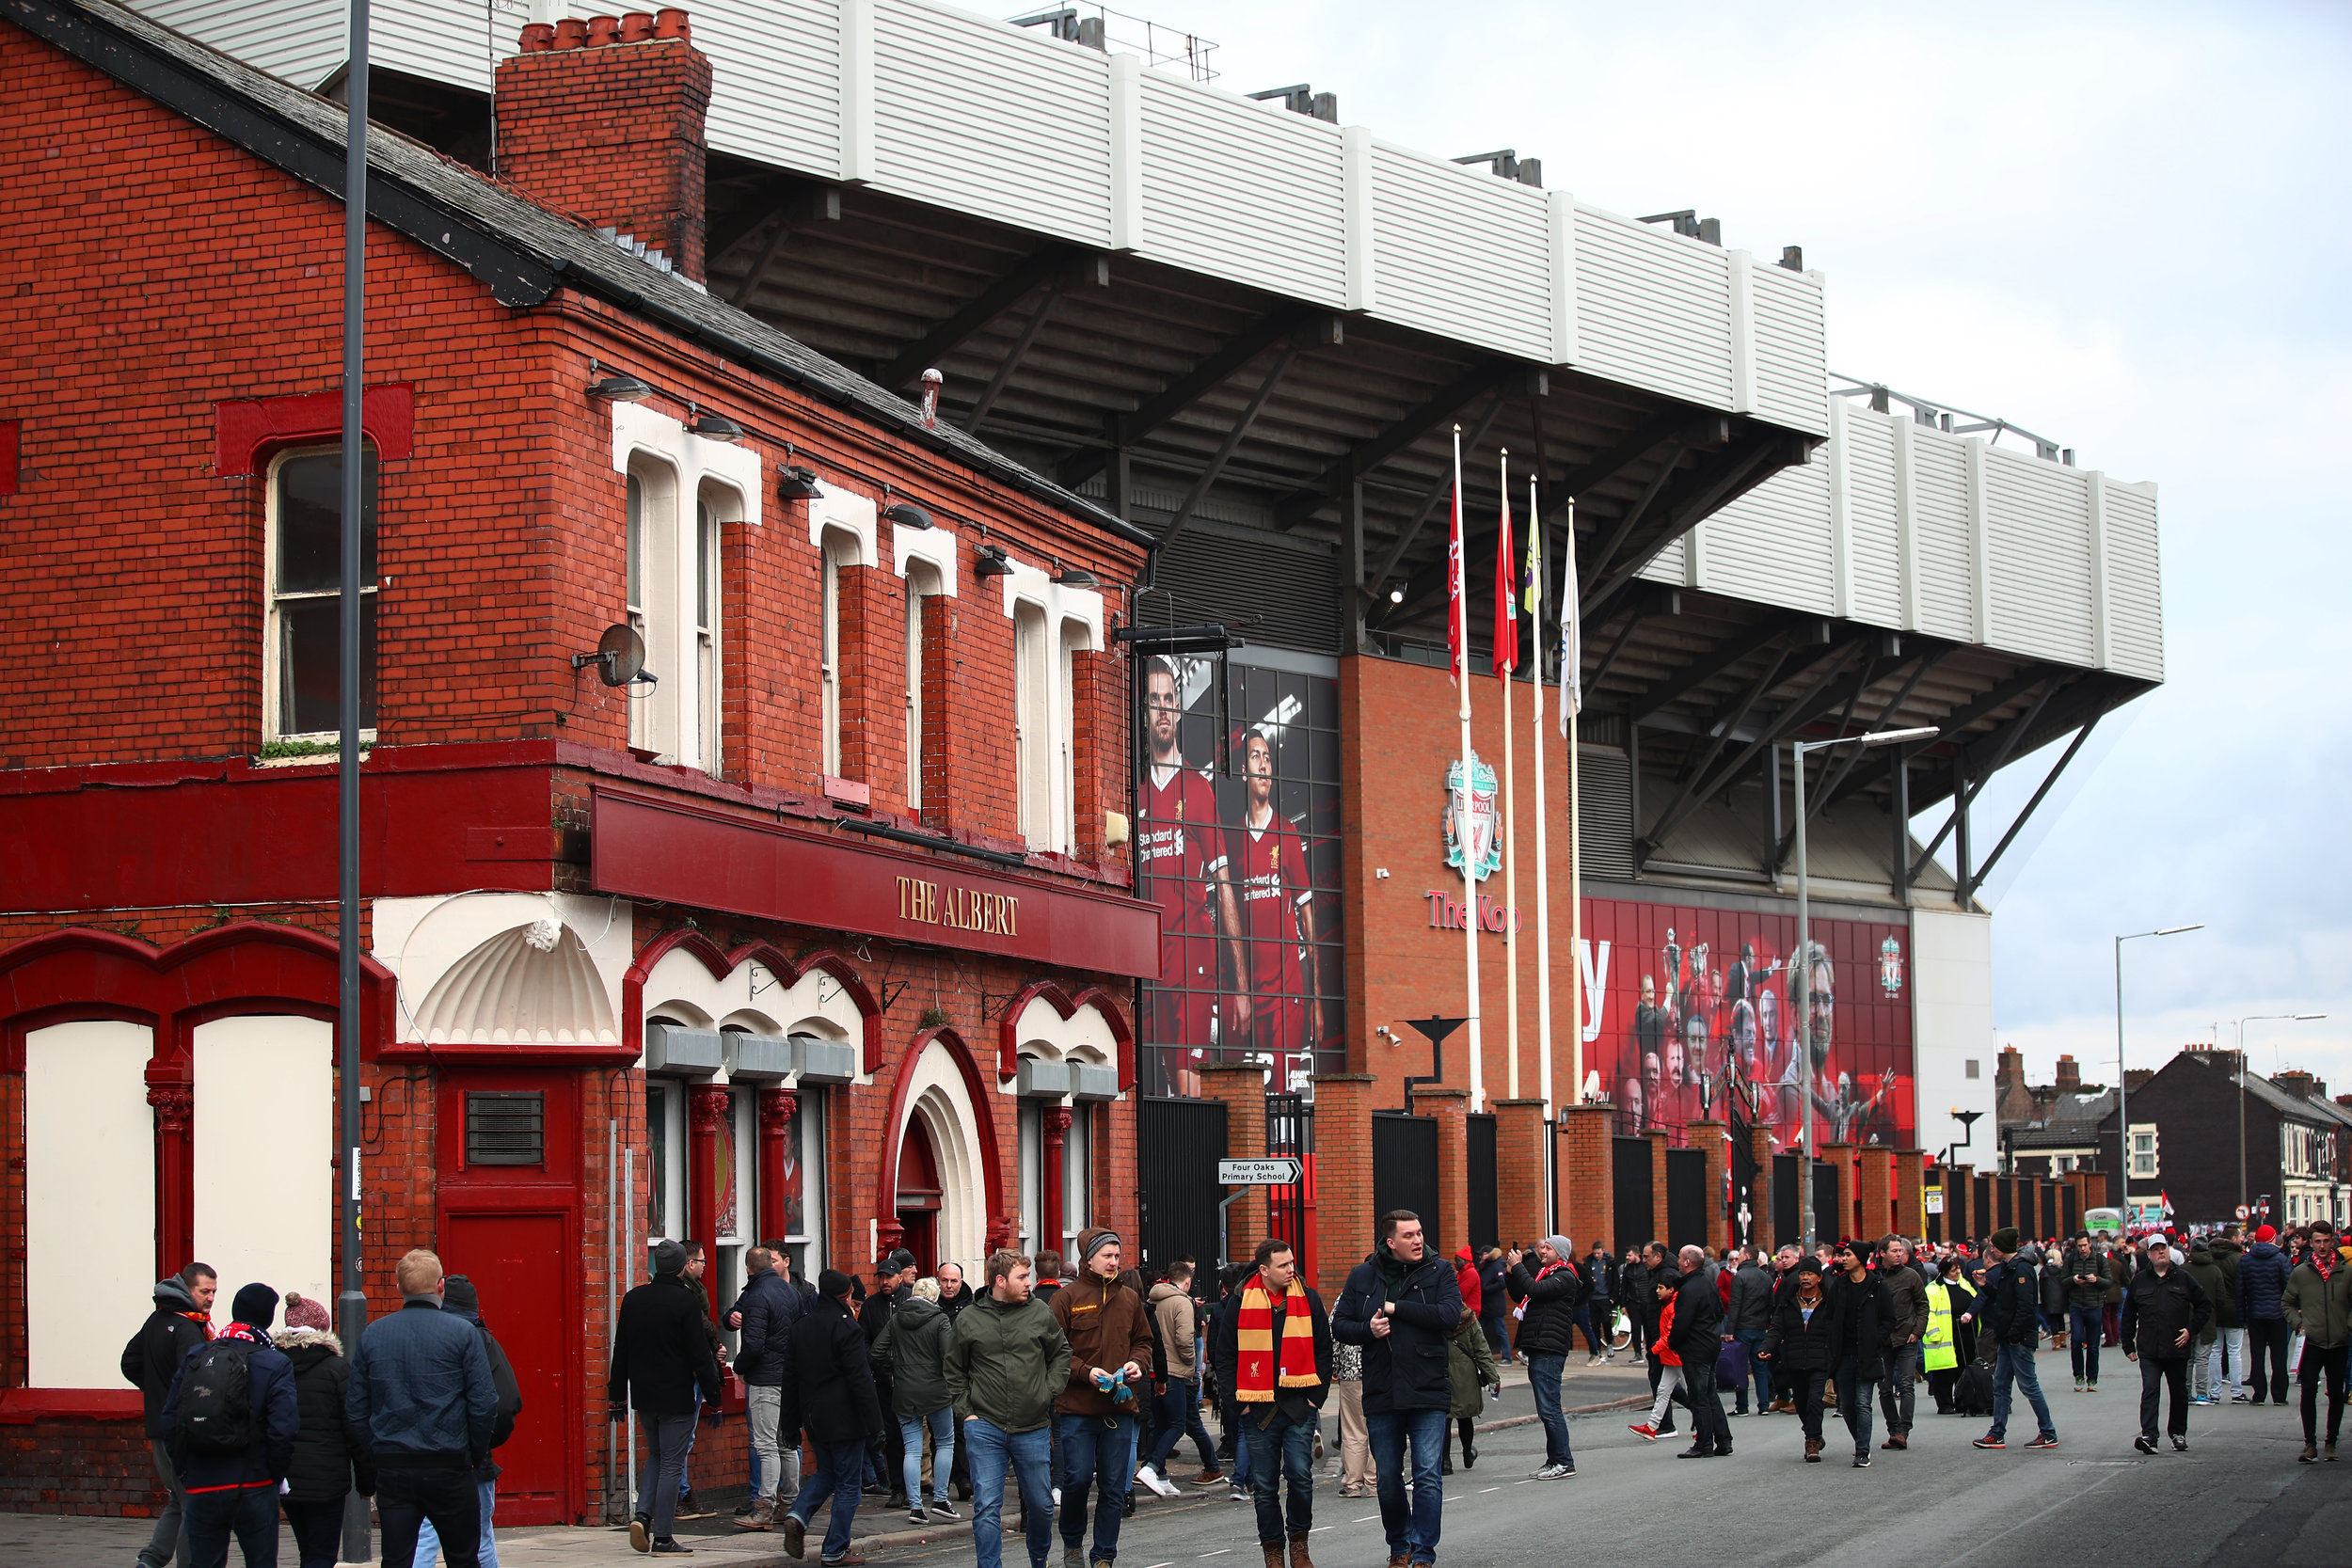 The exterior of Anfield Stadium today